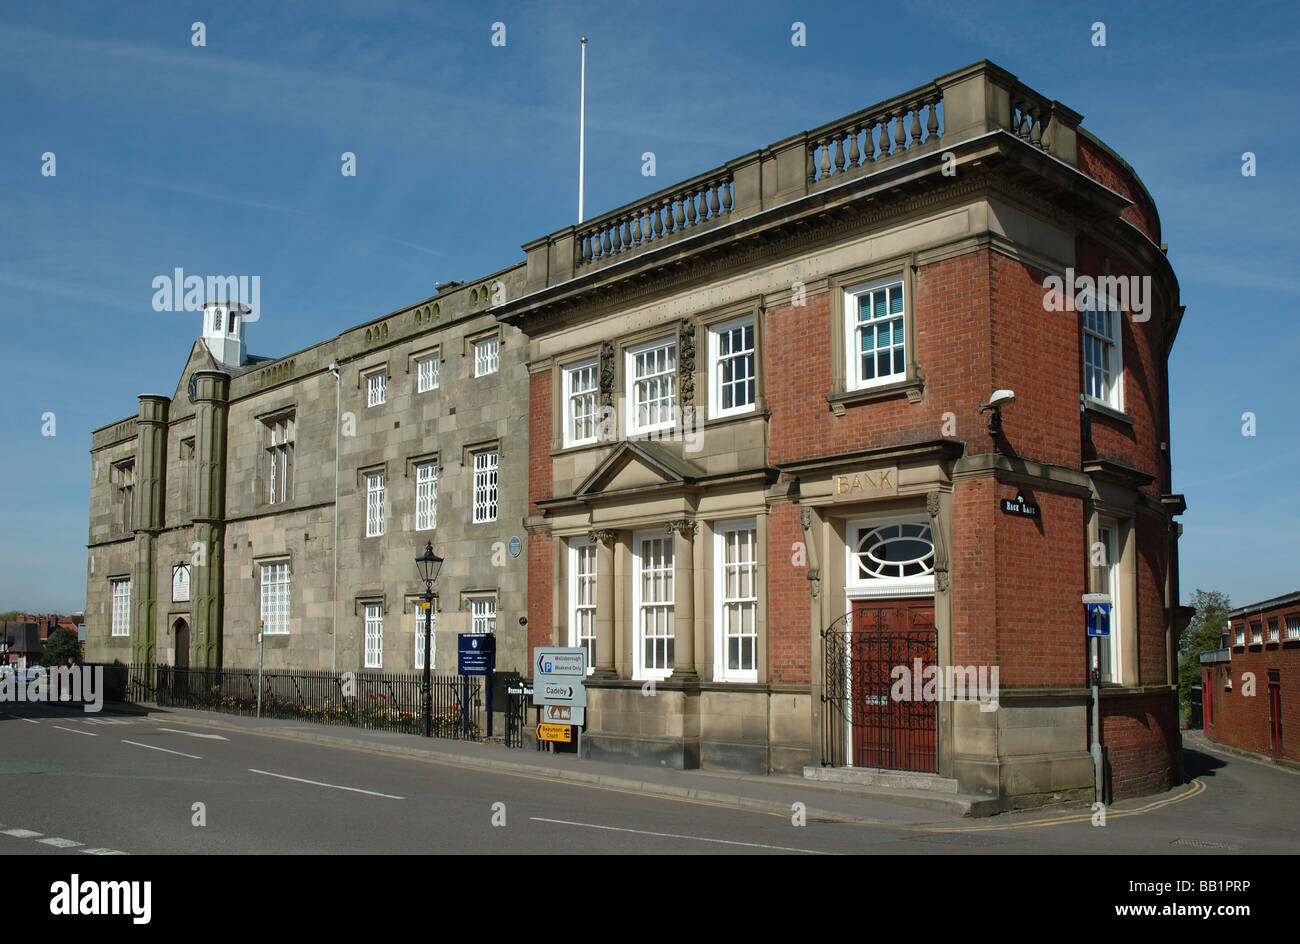 The Dixie Grammar School and the Bank Building, Market Place, Market Bosworth, Leicestershire, England, UK - Stock Image